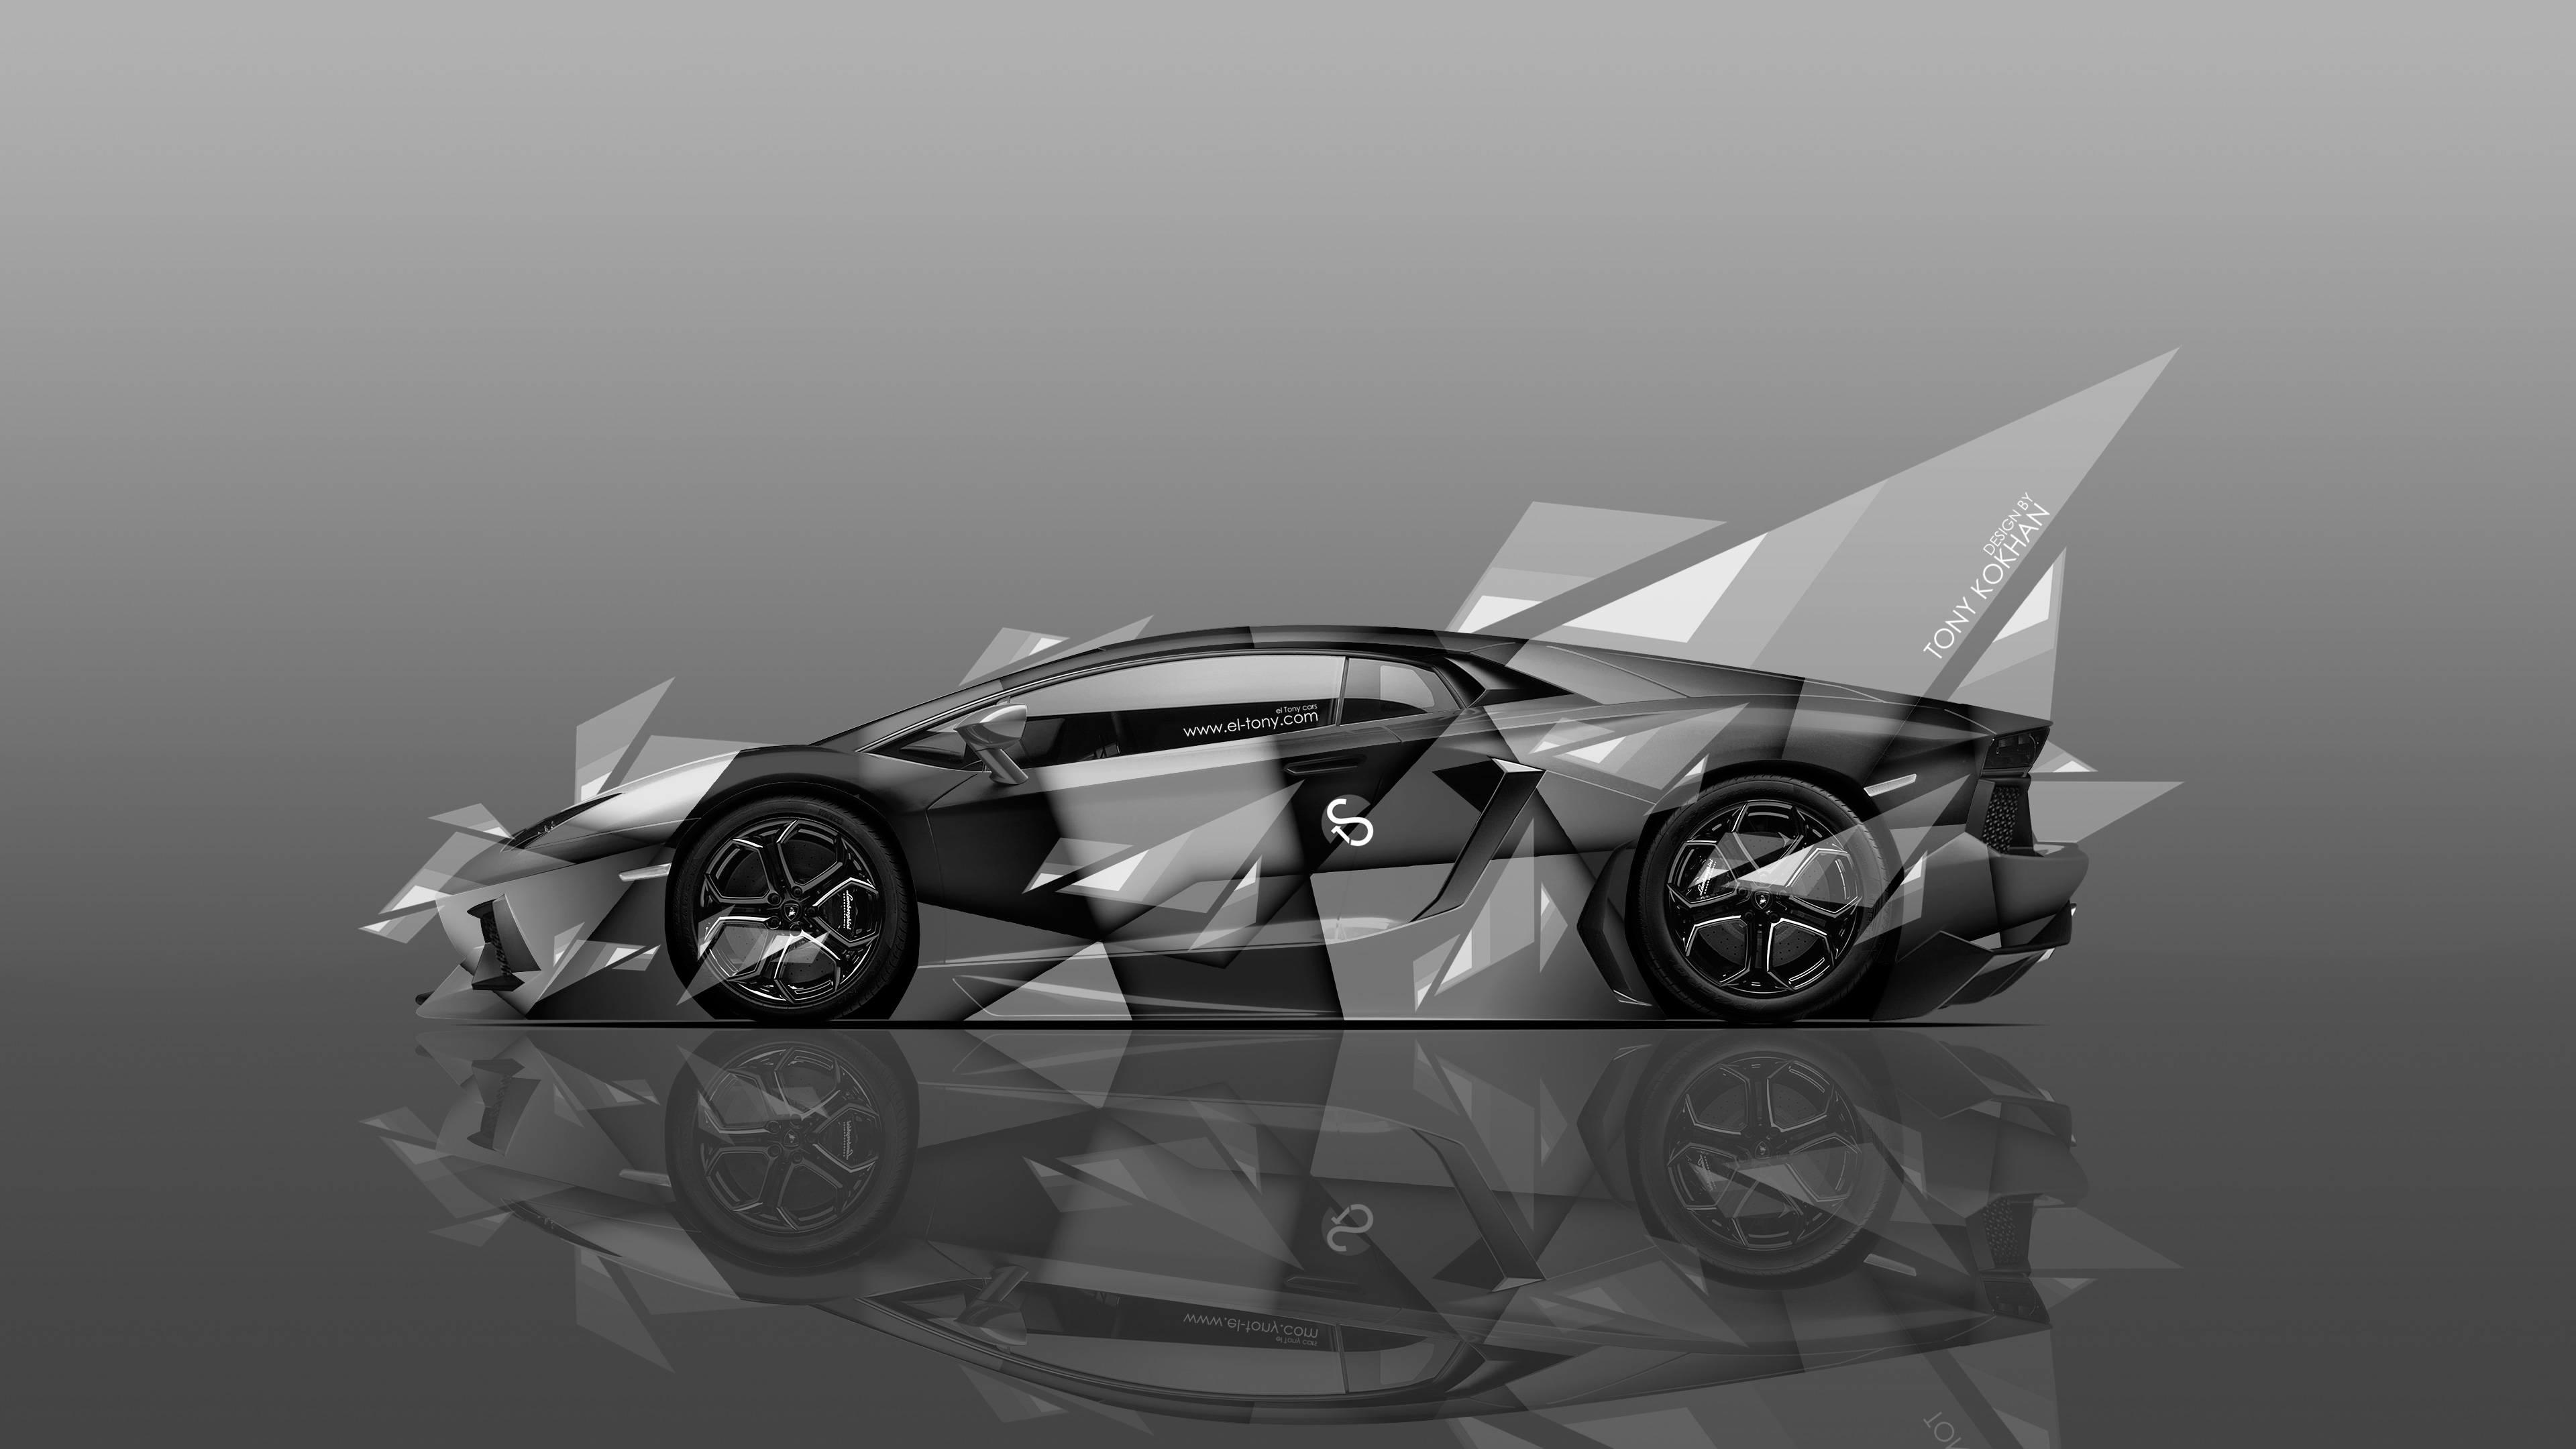 Lovely ... Lamborghini Aventador Side Abstract Aerography Car 2014 Black  ...